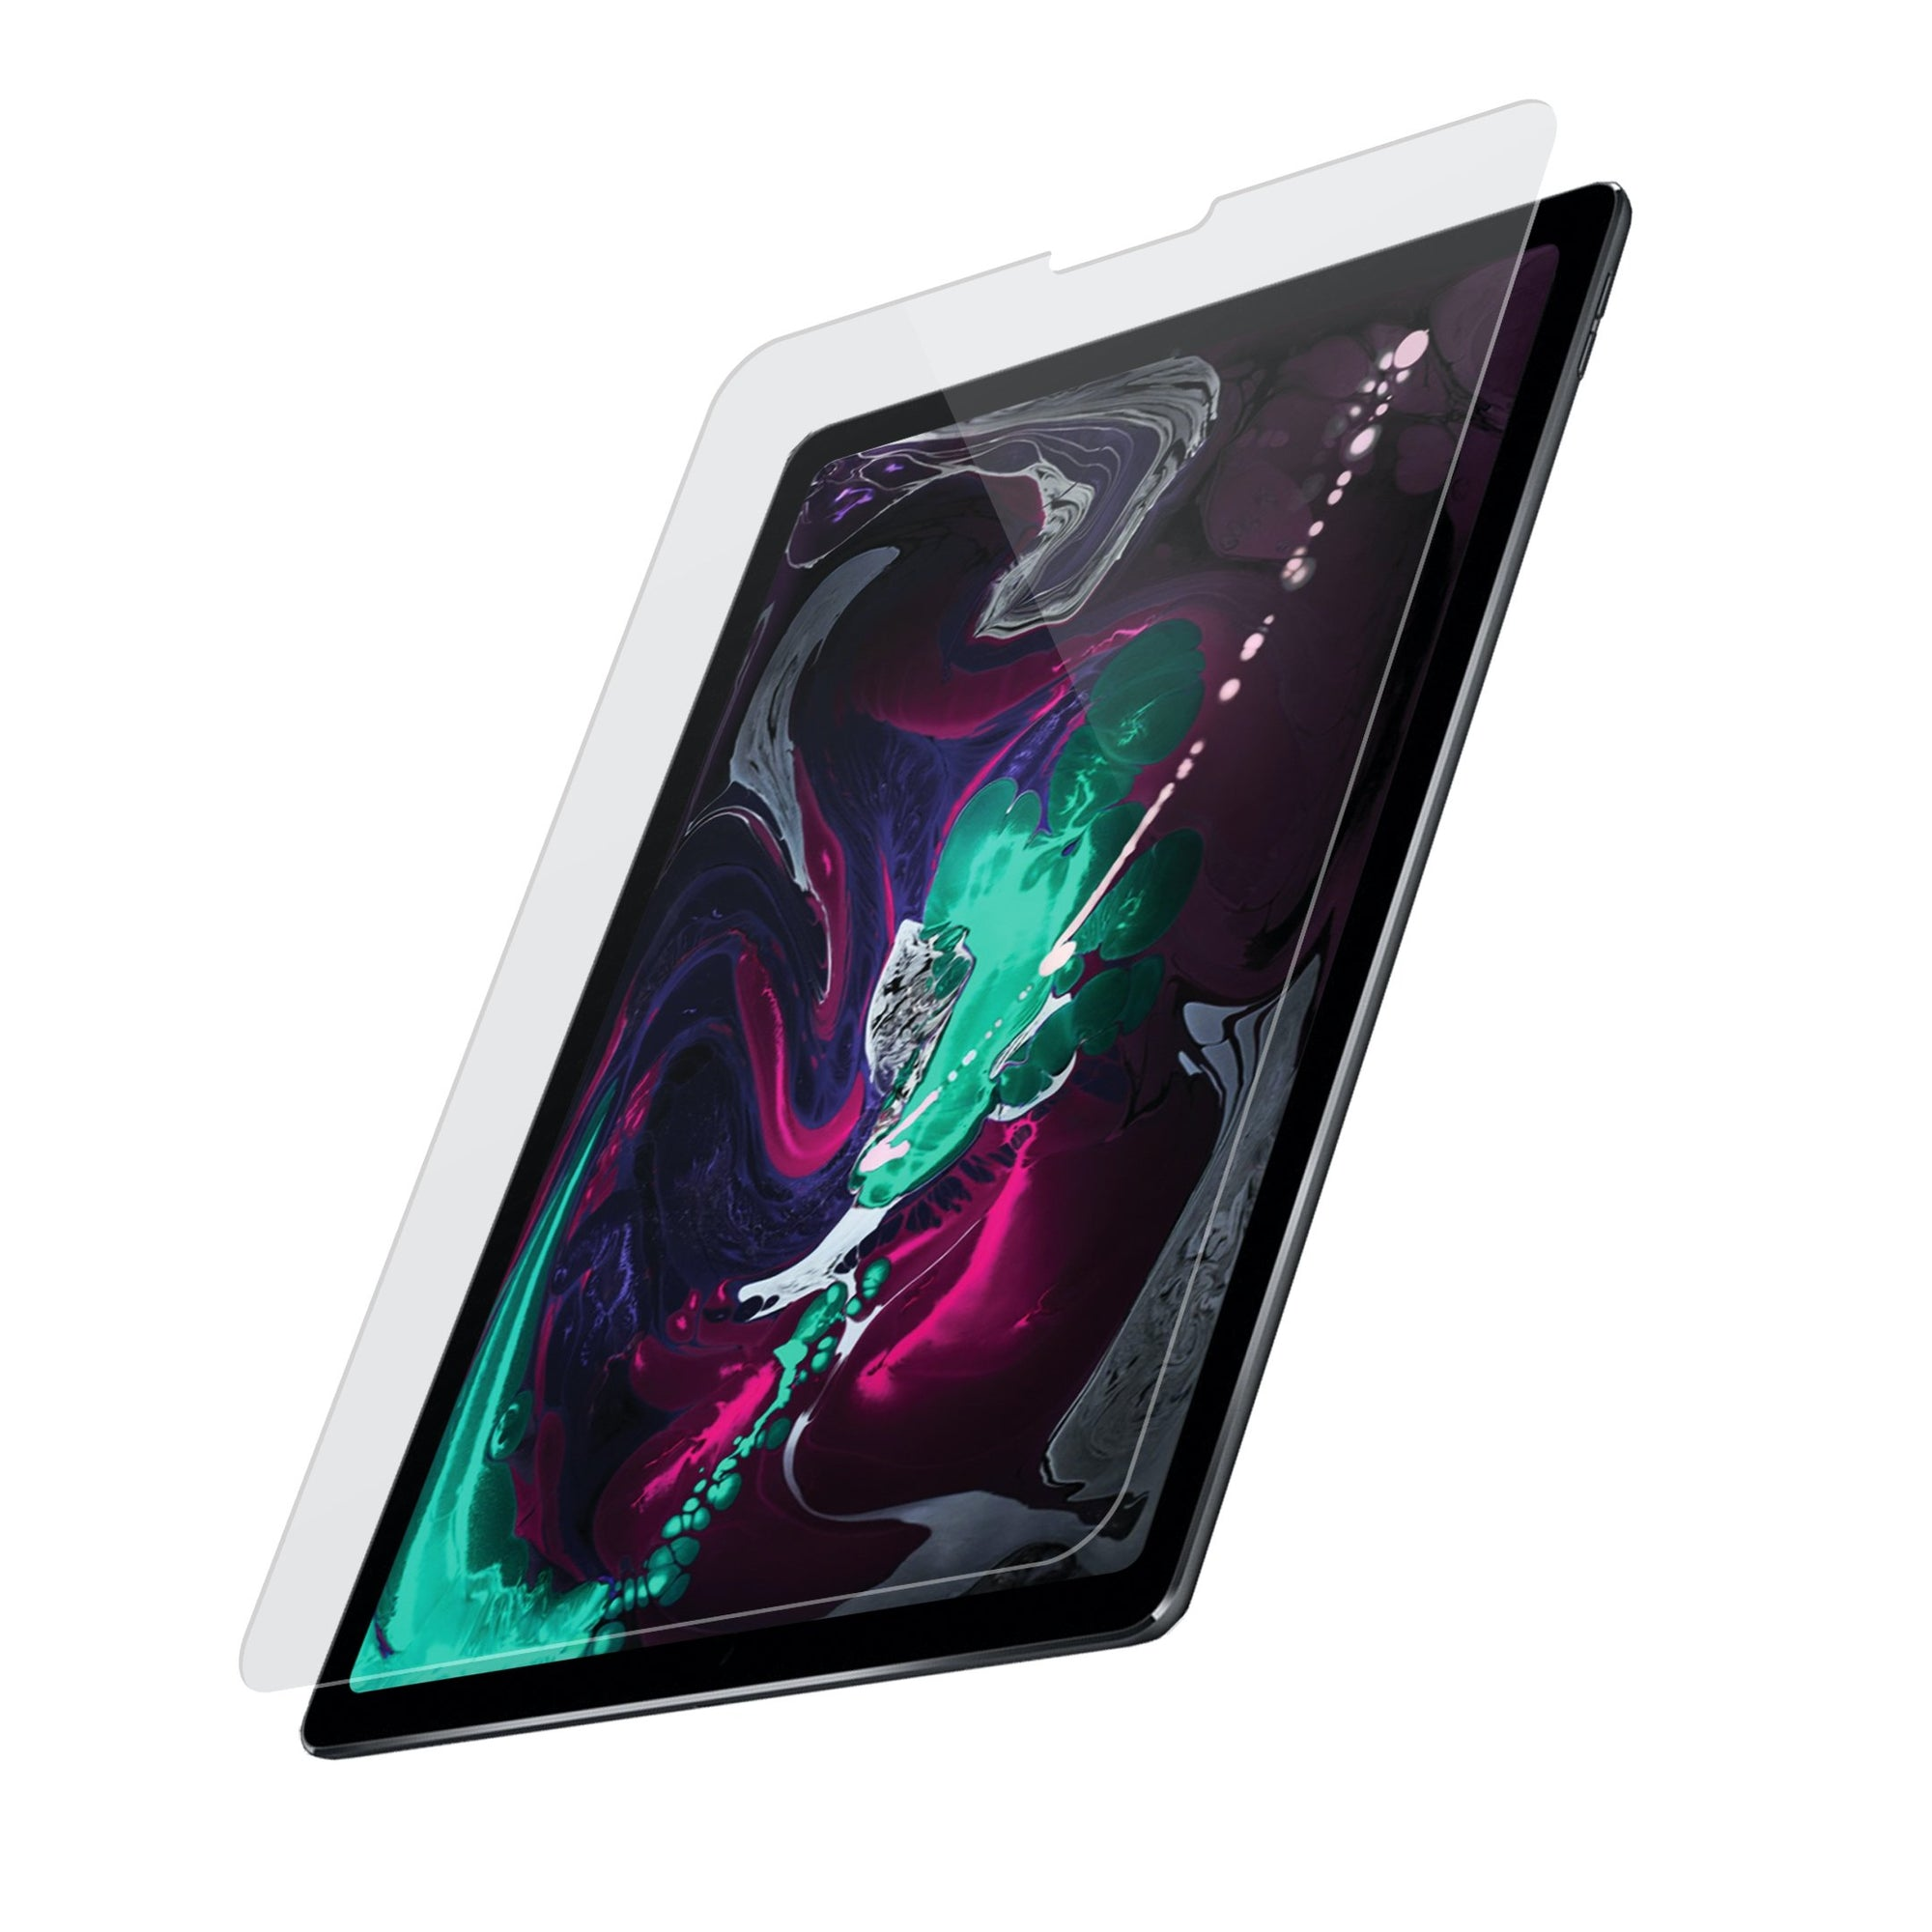 "NVS Atom Glass for iPad Pro 11"" (Gen 2 & 1)"